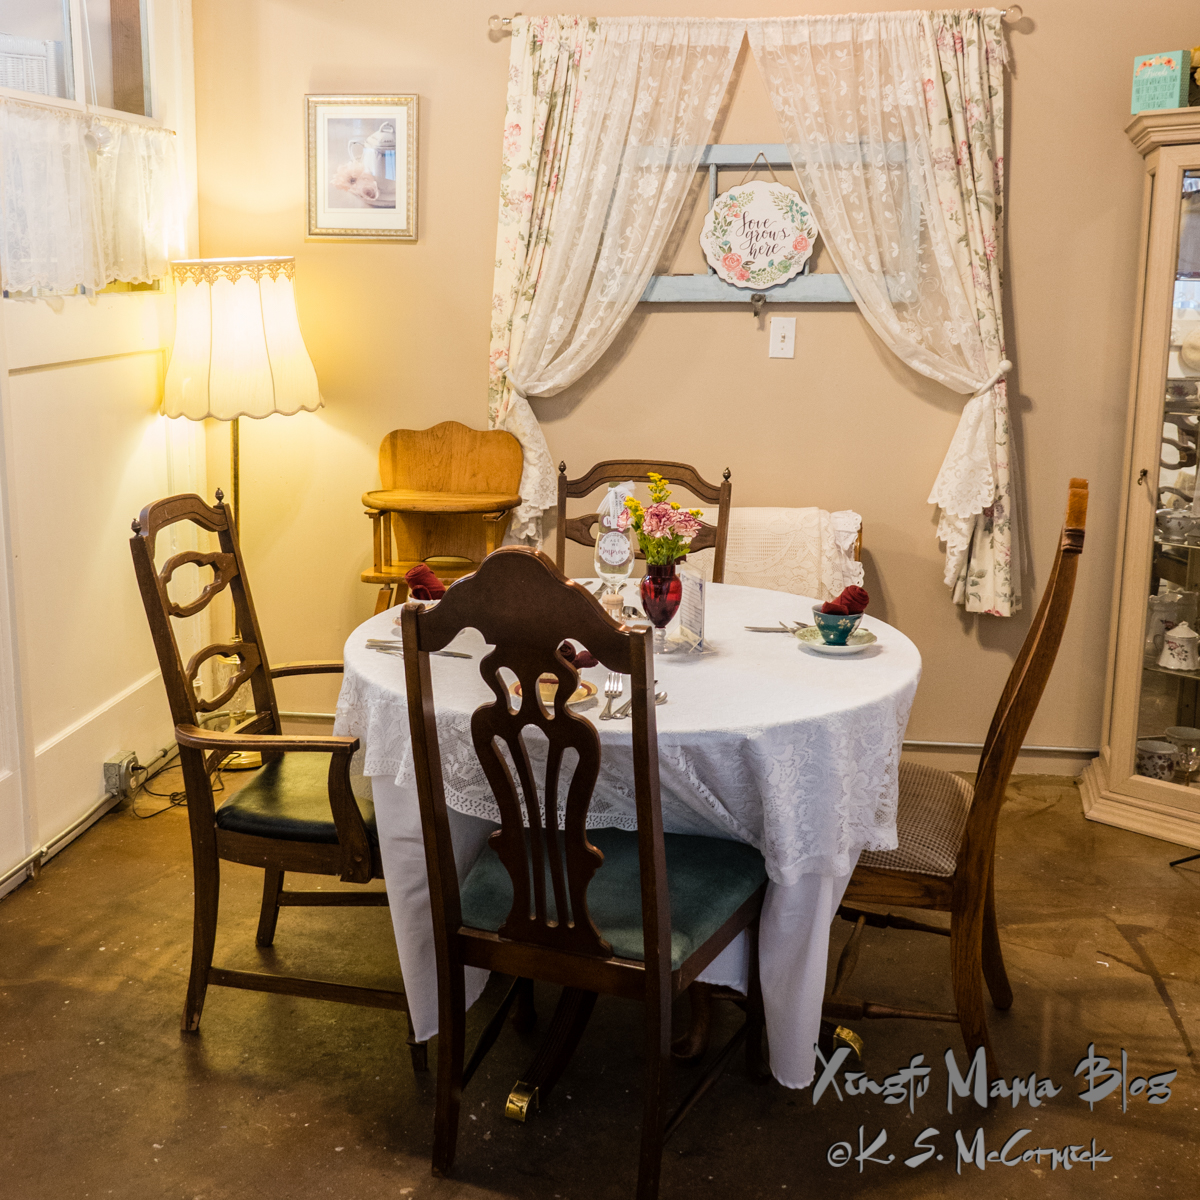 Table and chairs set for tea in a private room at the Tea Rooms at the Grainery building in Mount Vernon.